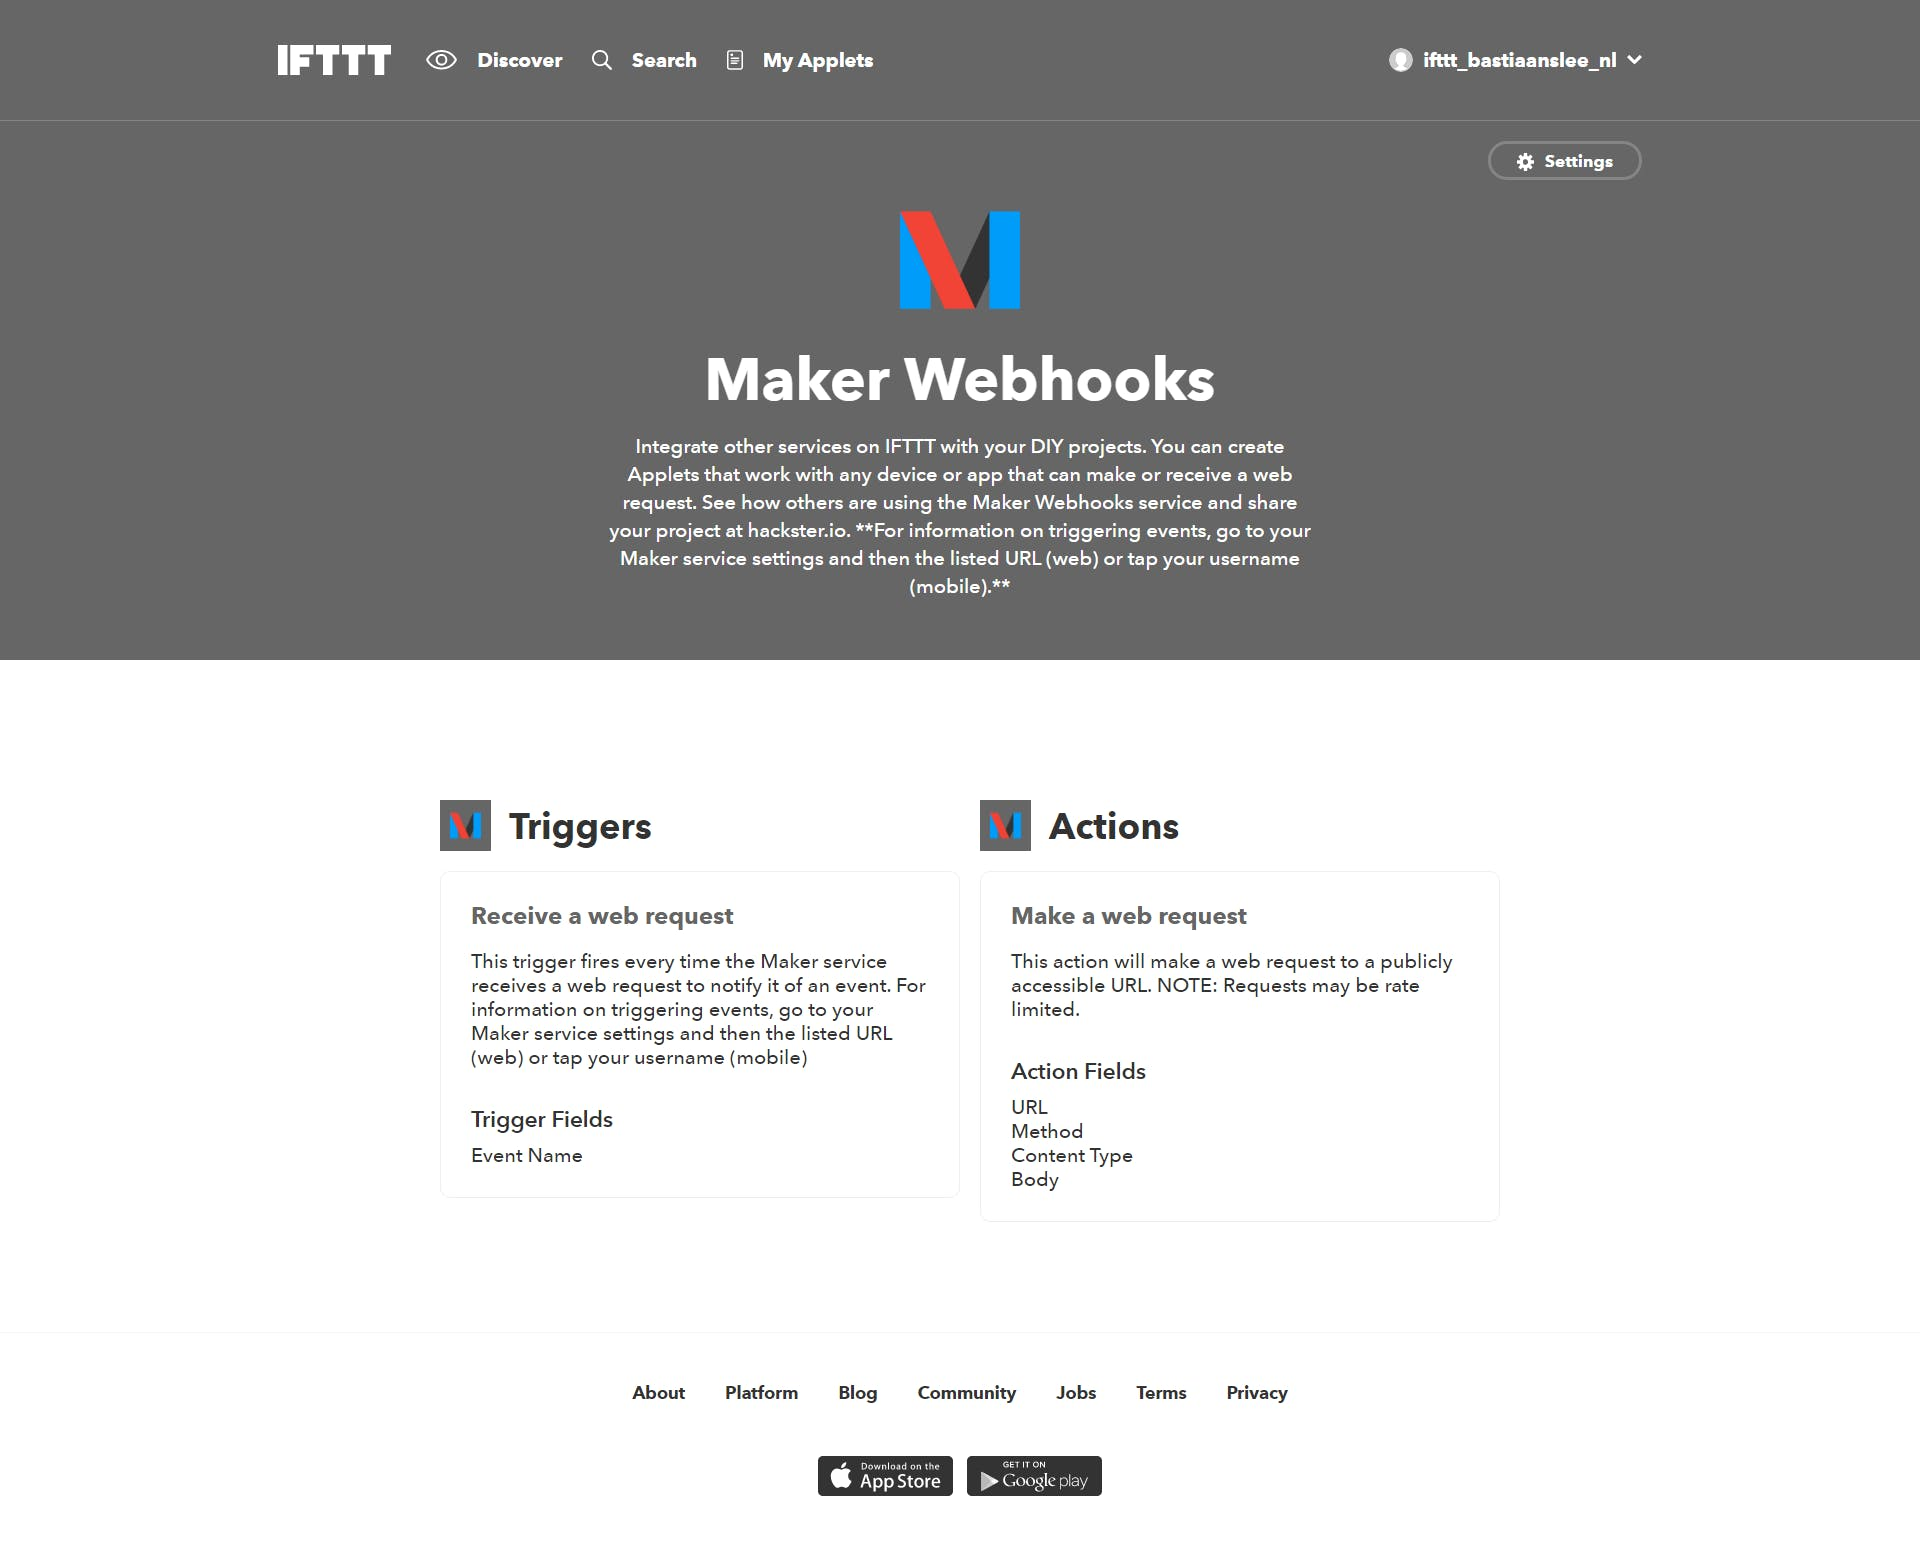 Go to the Maker Webhook homepage, and click the Settings link at the top right